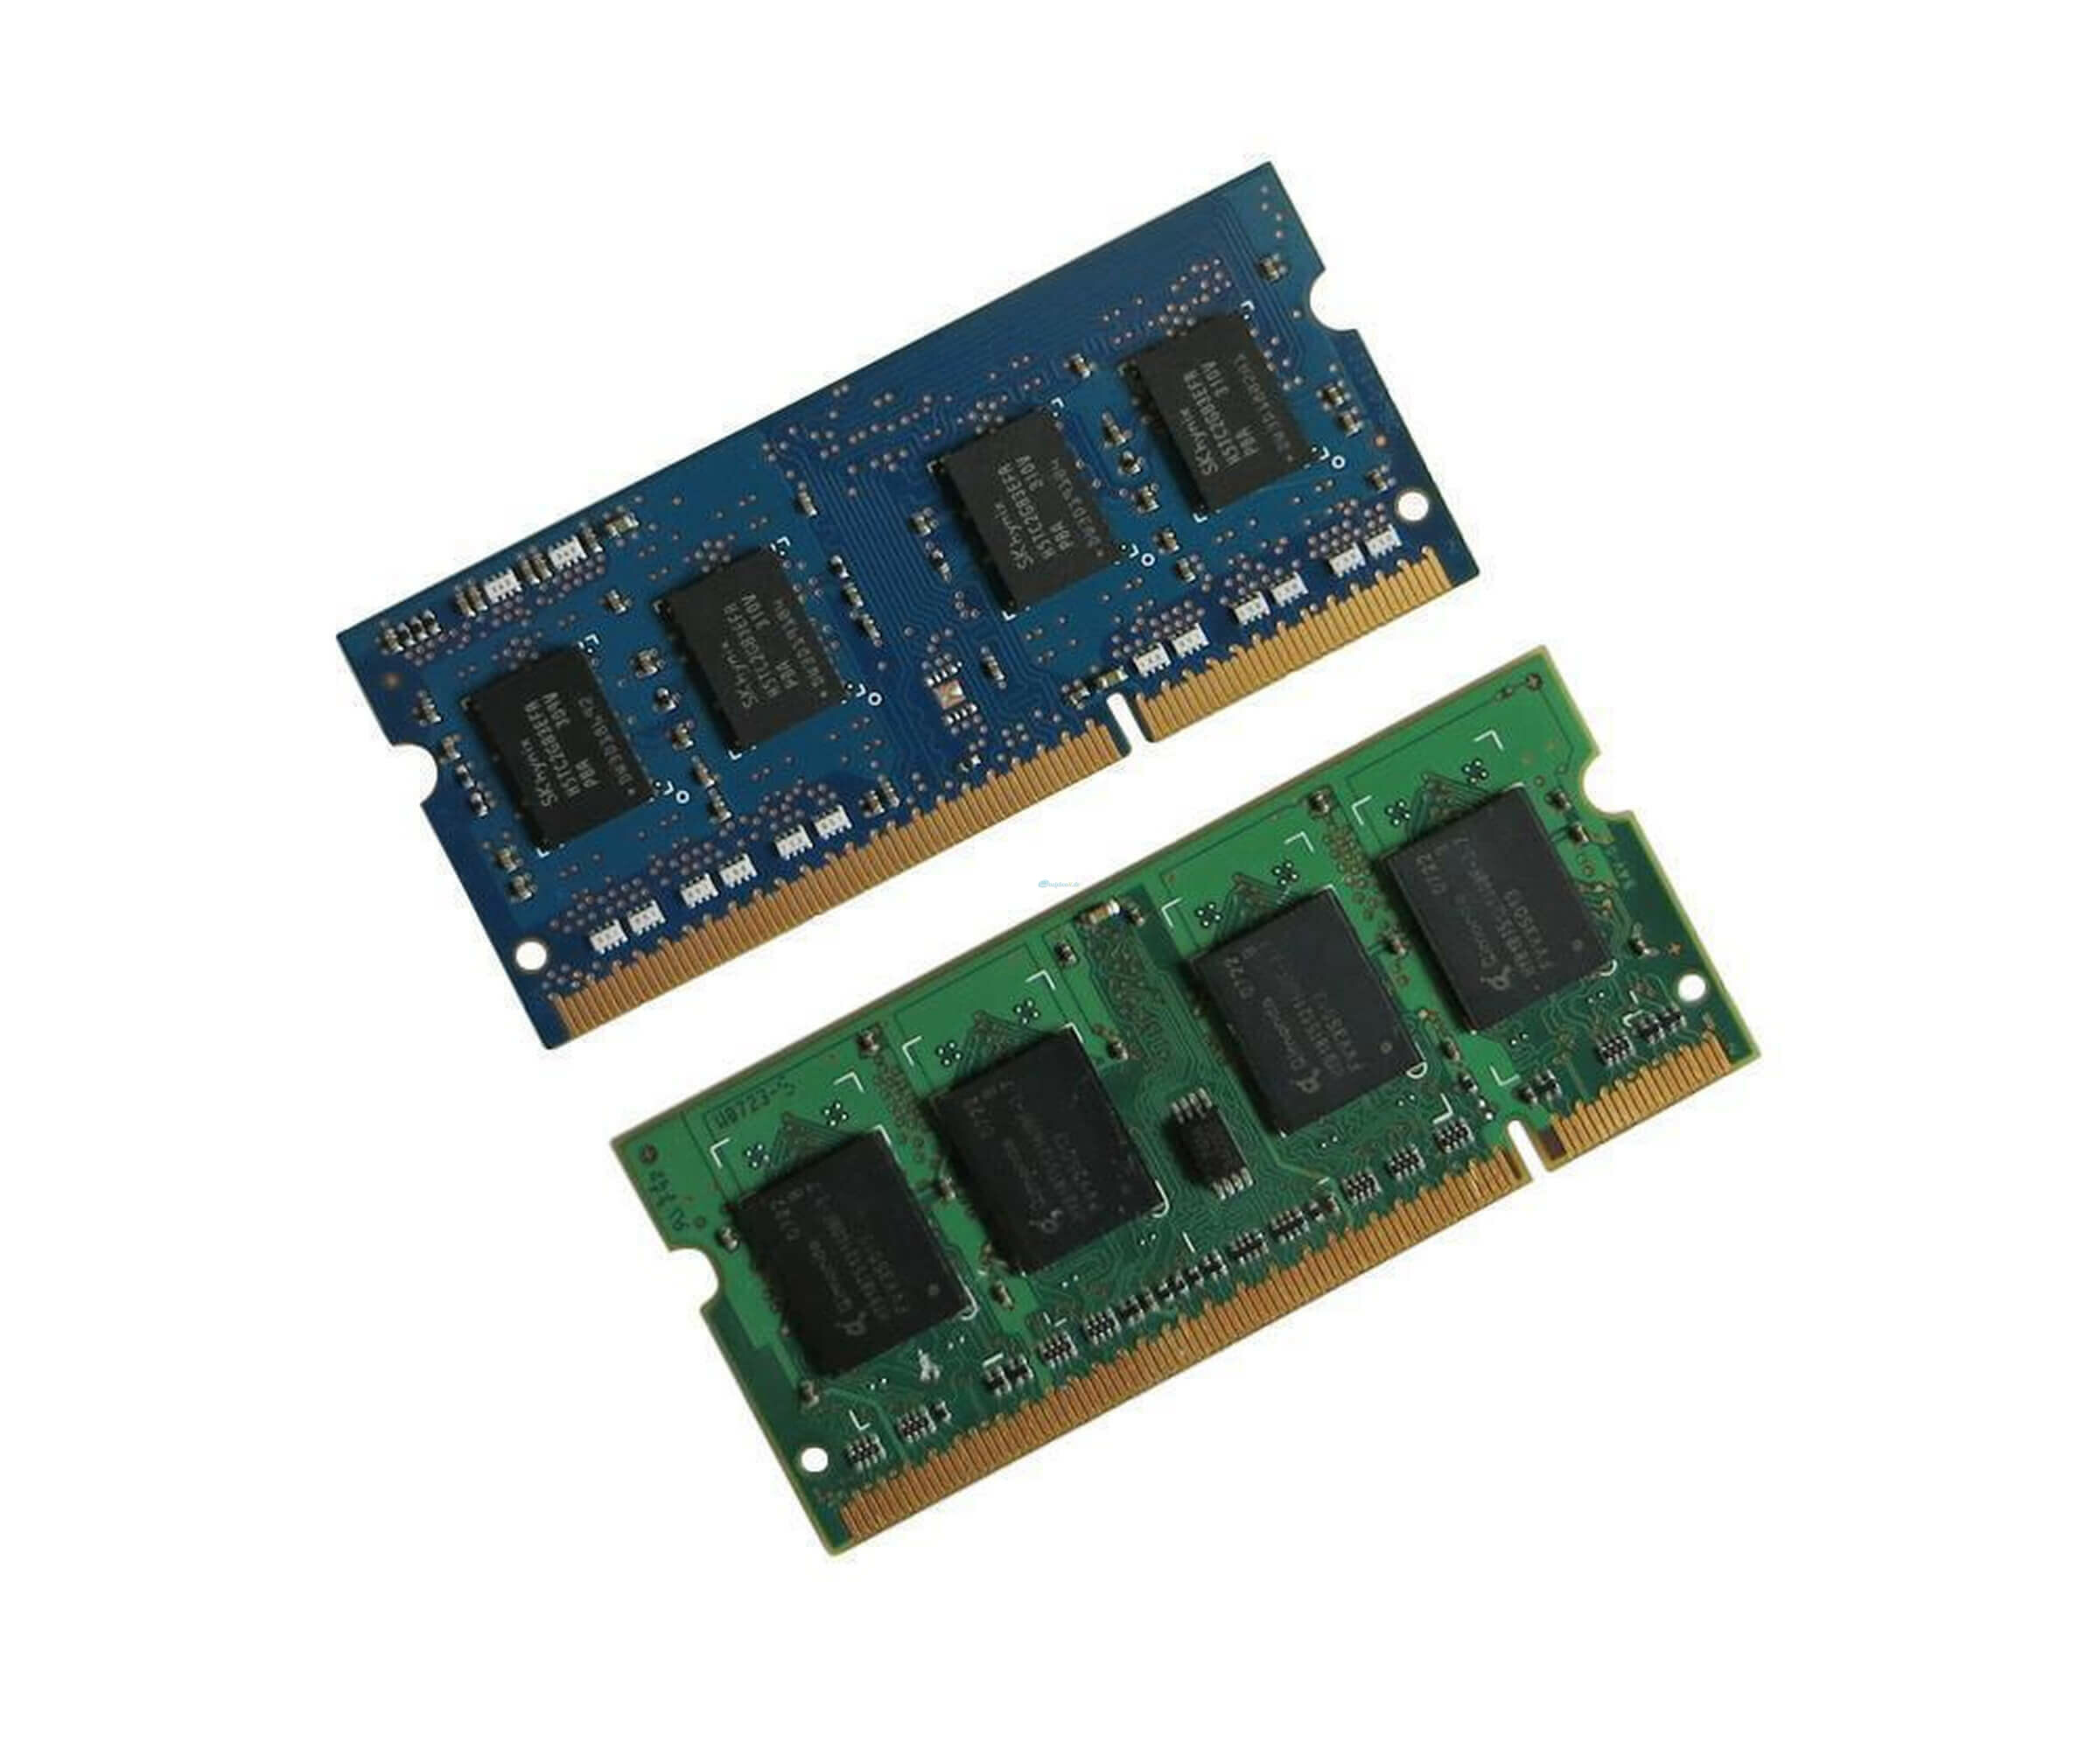 Samsung M470T6554BZ0-CD5 Memory - 512 MB - PC-4200 - SODIMM 200-PIN - DDR2